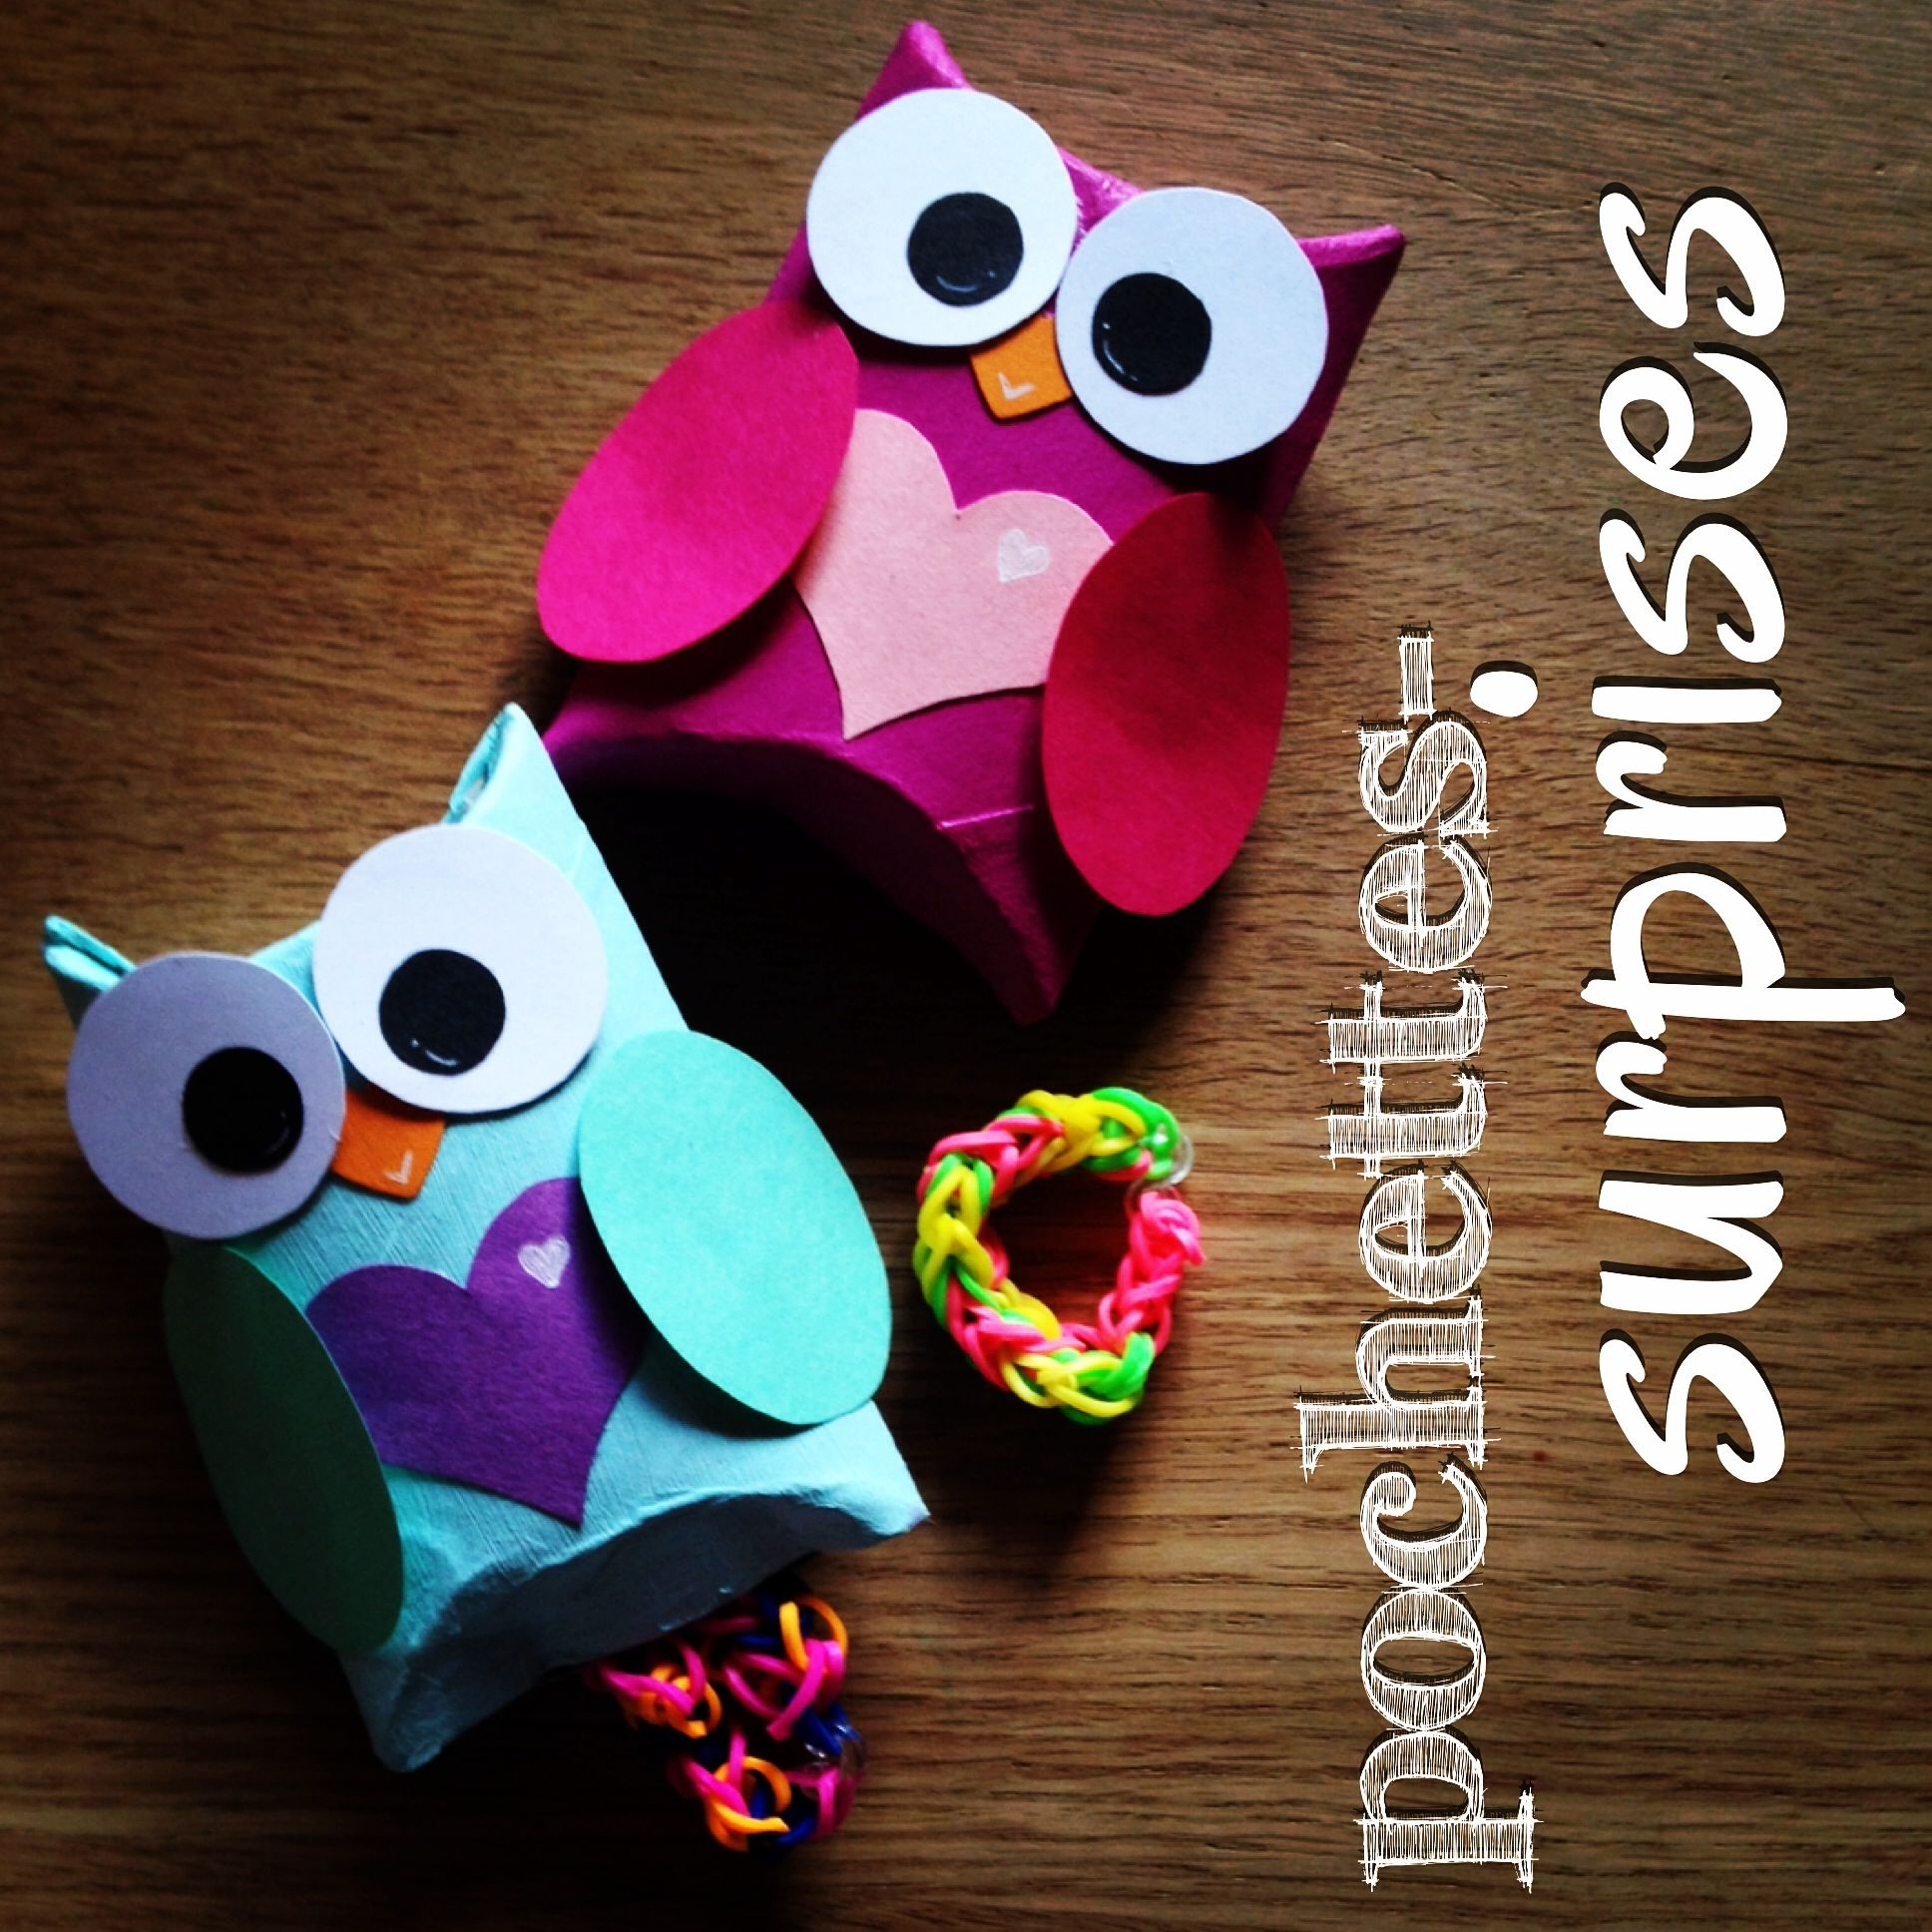 pochettes surprises hibou rouleau papier toilette diy enfants bricolage pinterest. Black Bedroom Furniture Sets. Home Design Ideas